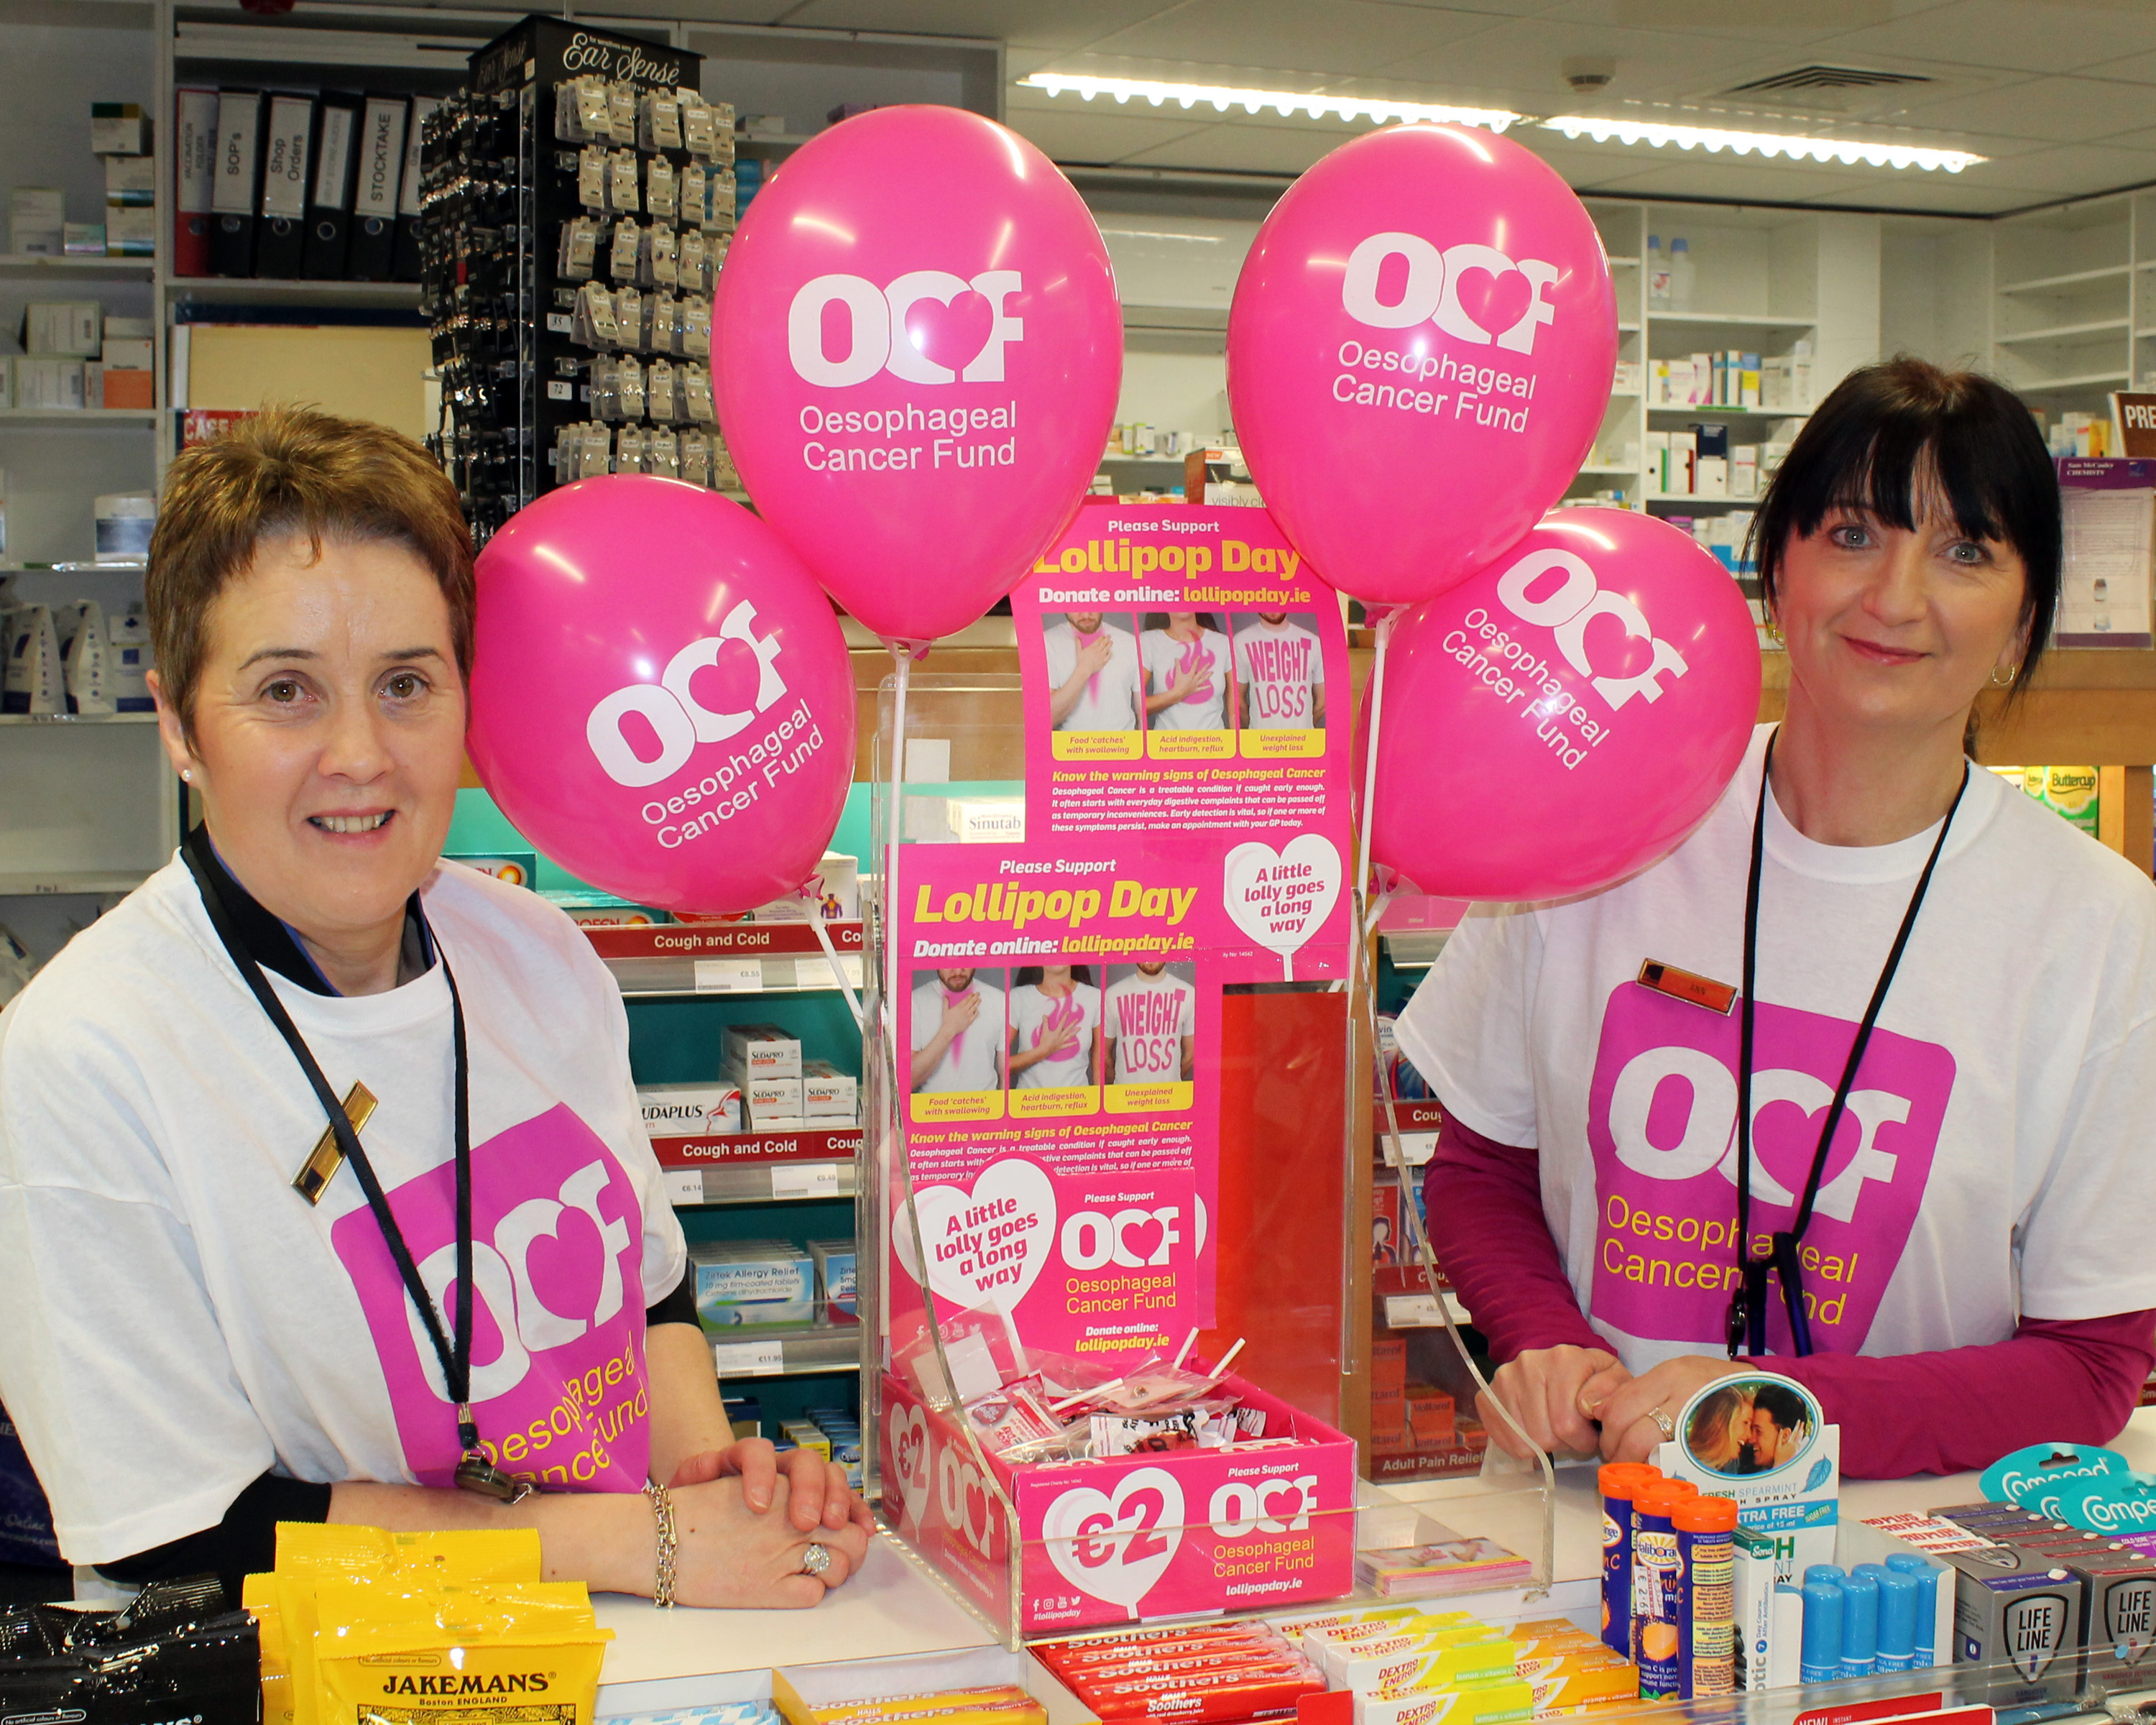 Lollipop Day for Oesophageal Cancer Fund